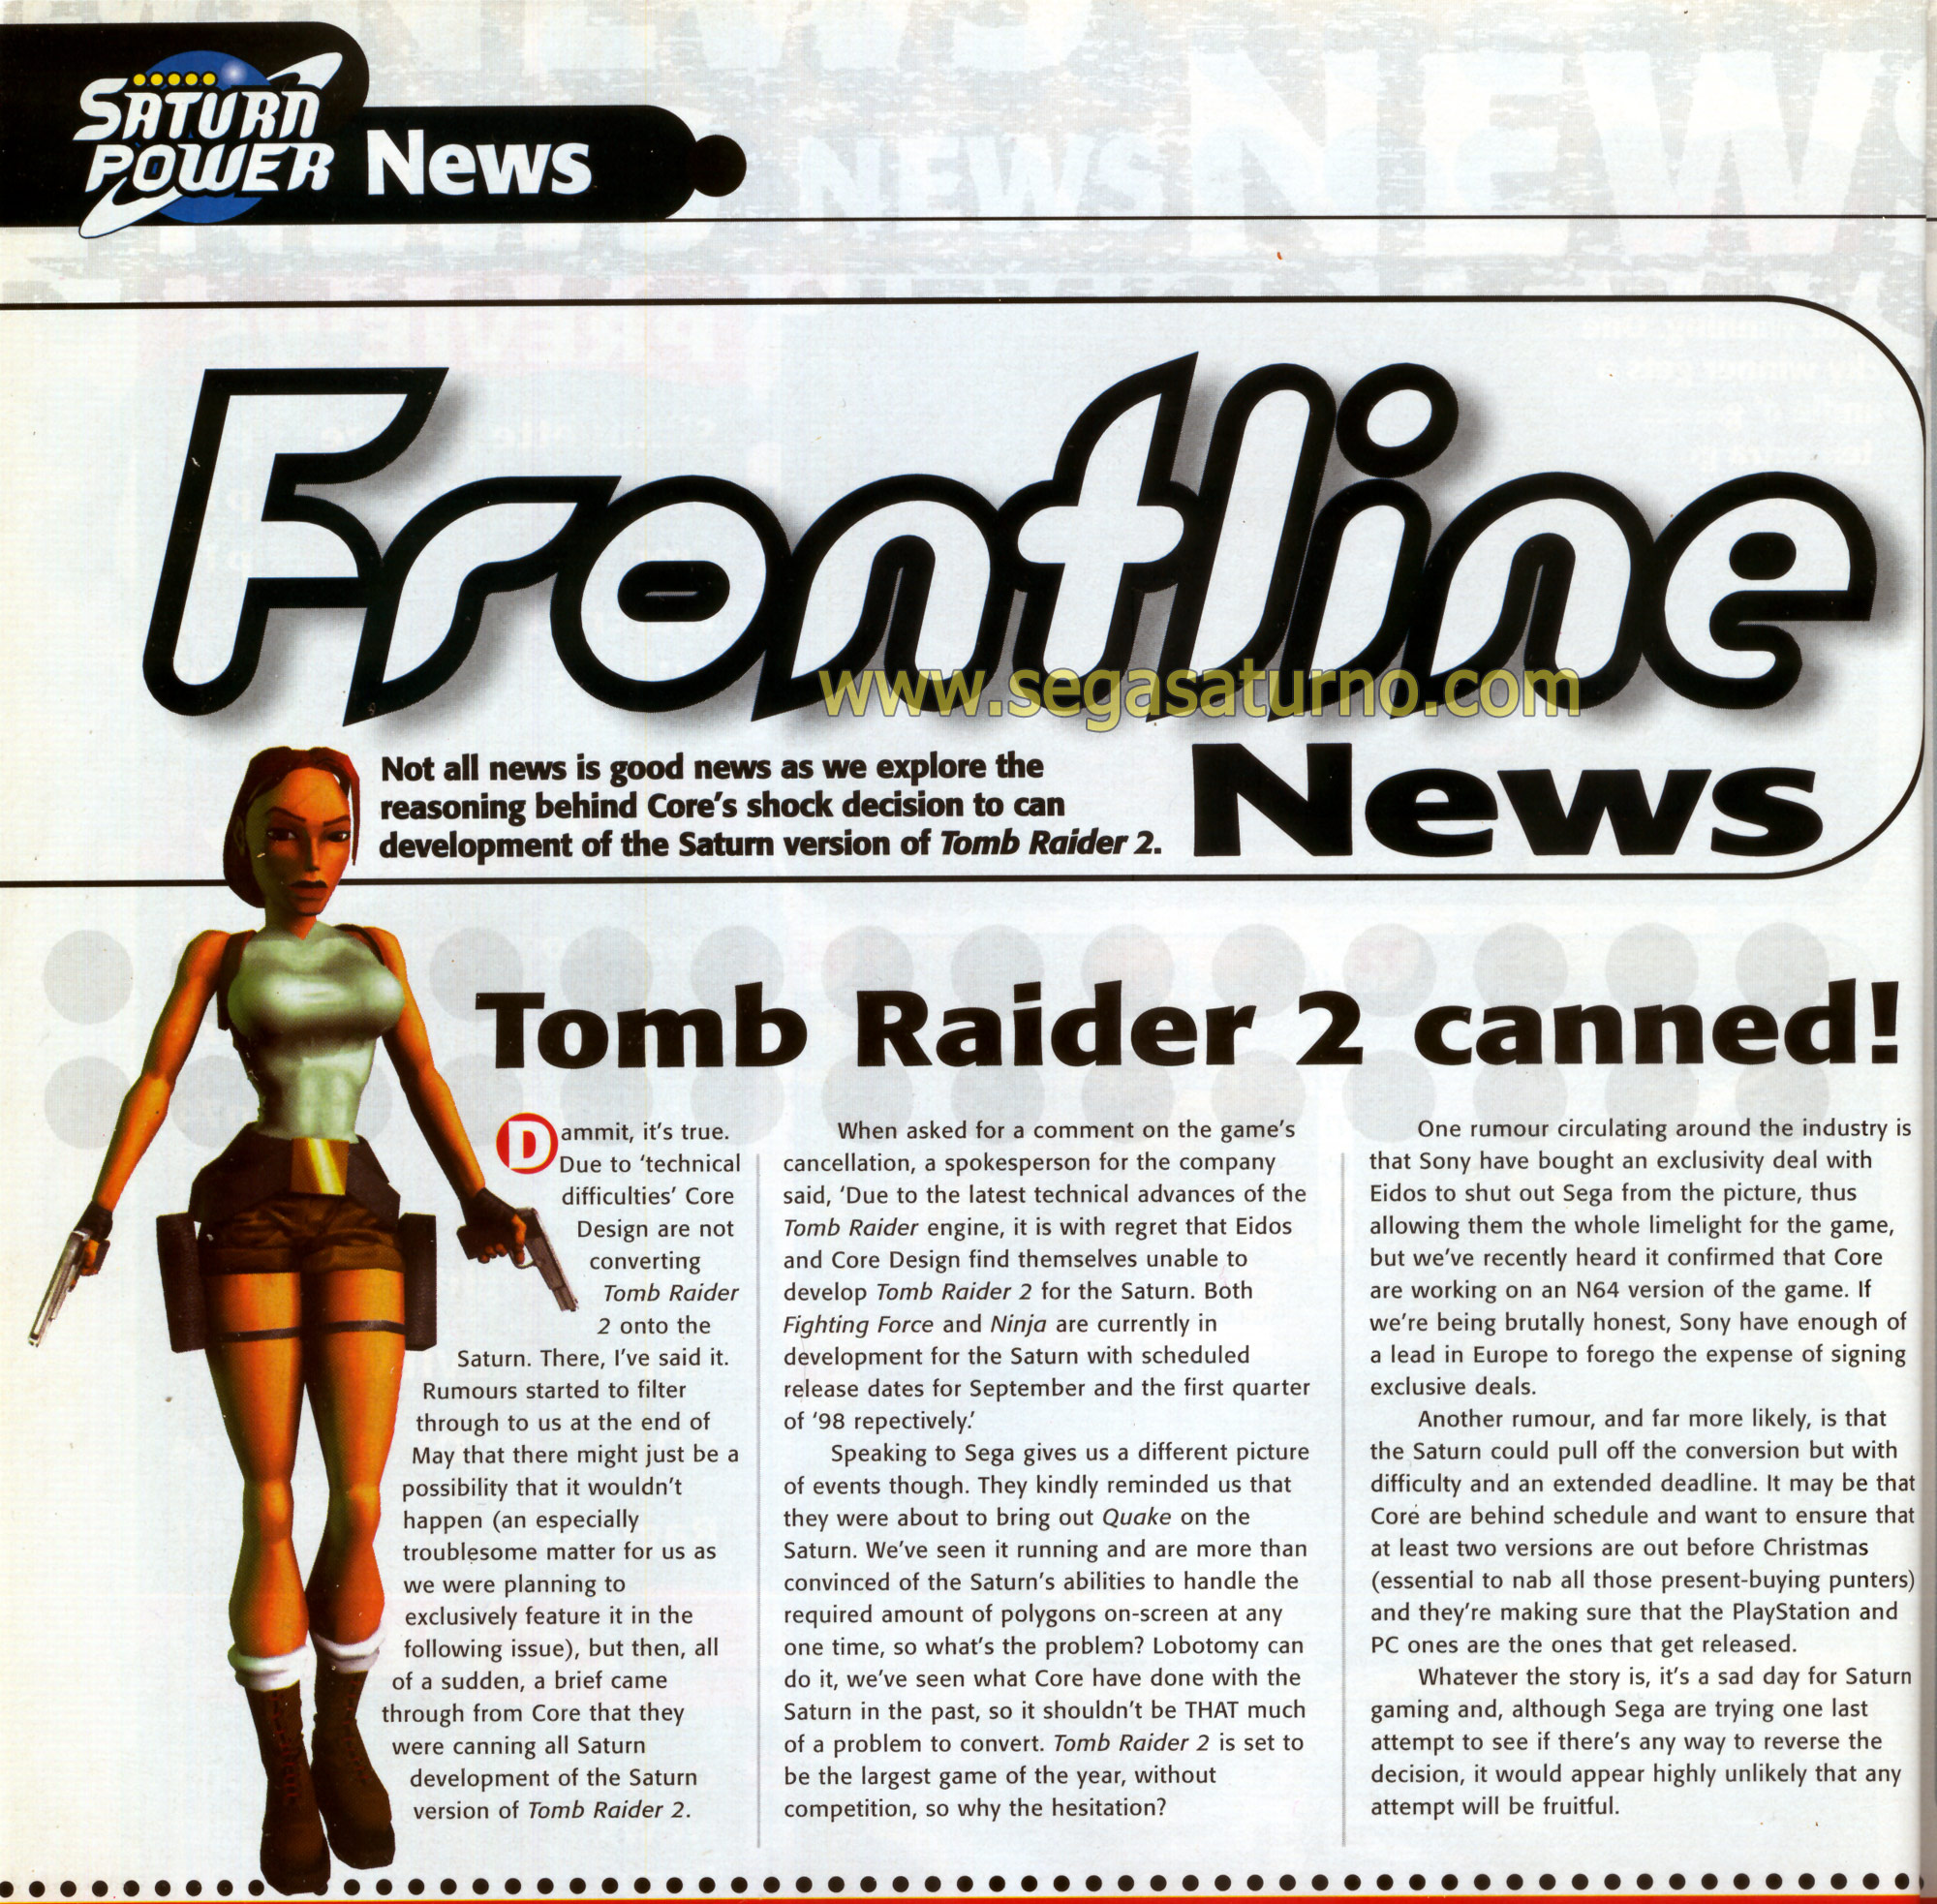 saturn_power_tomb_raider_2_saturn